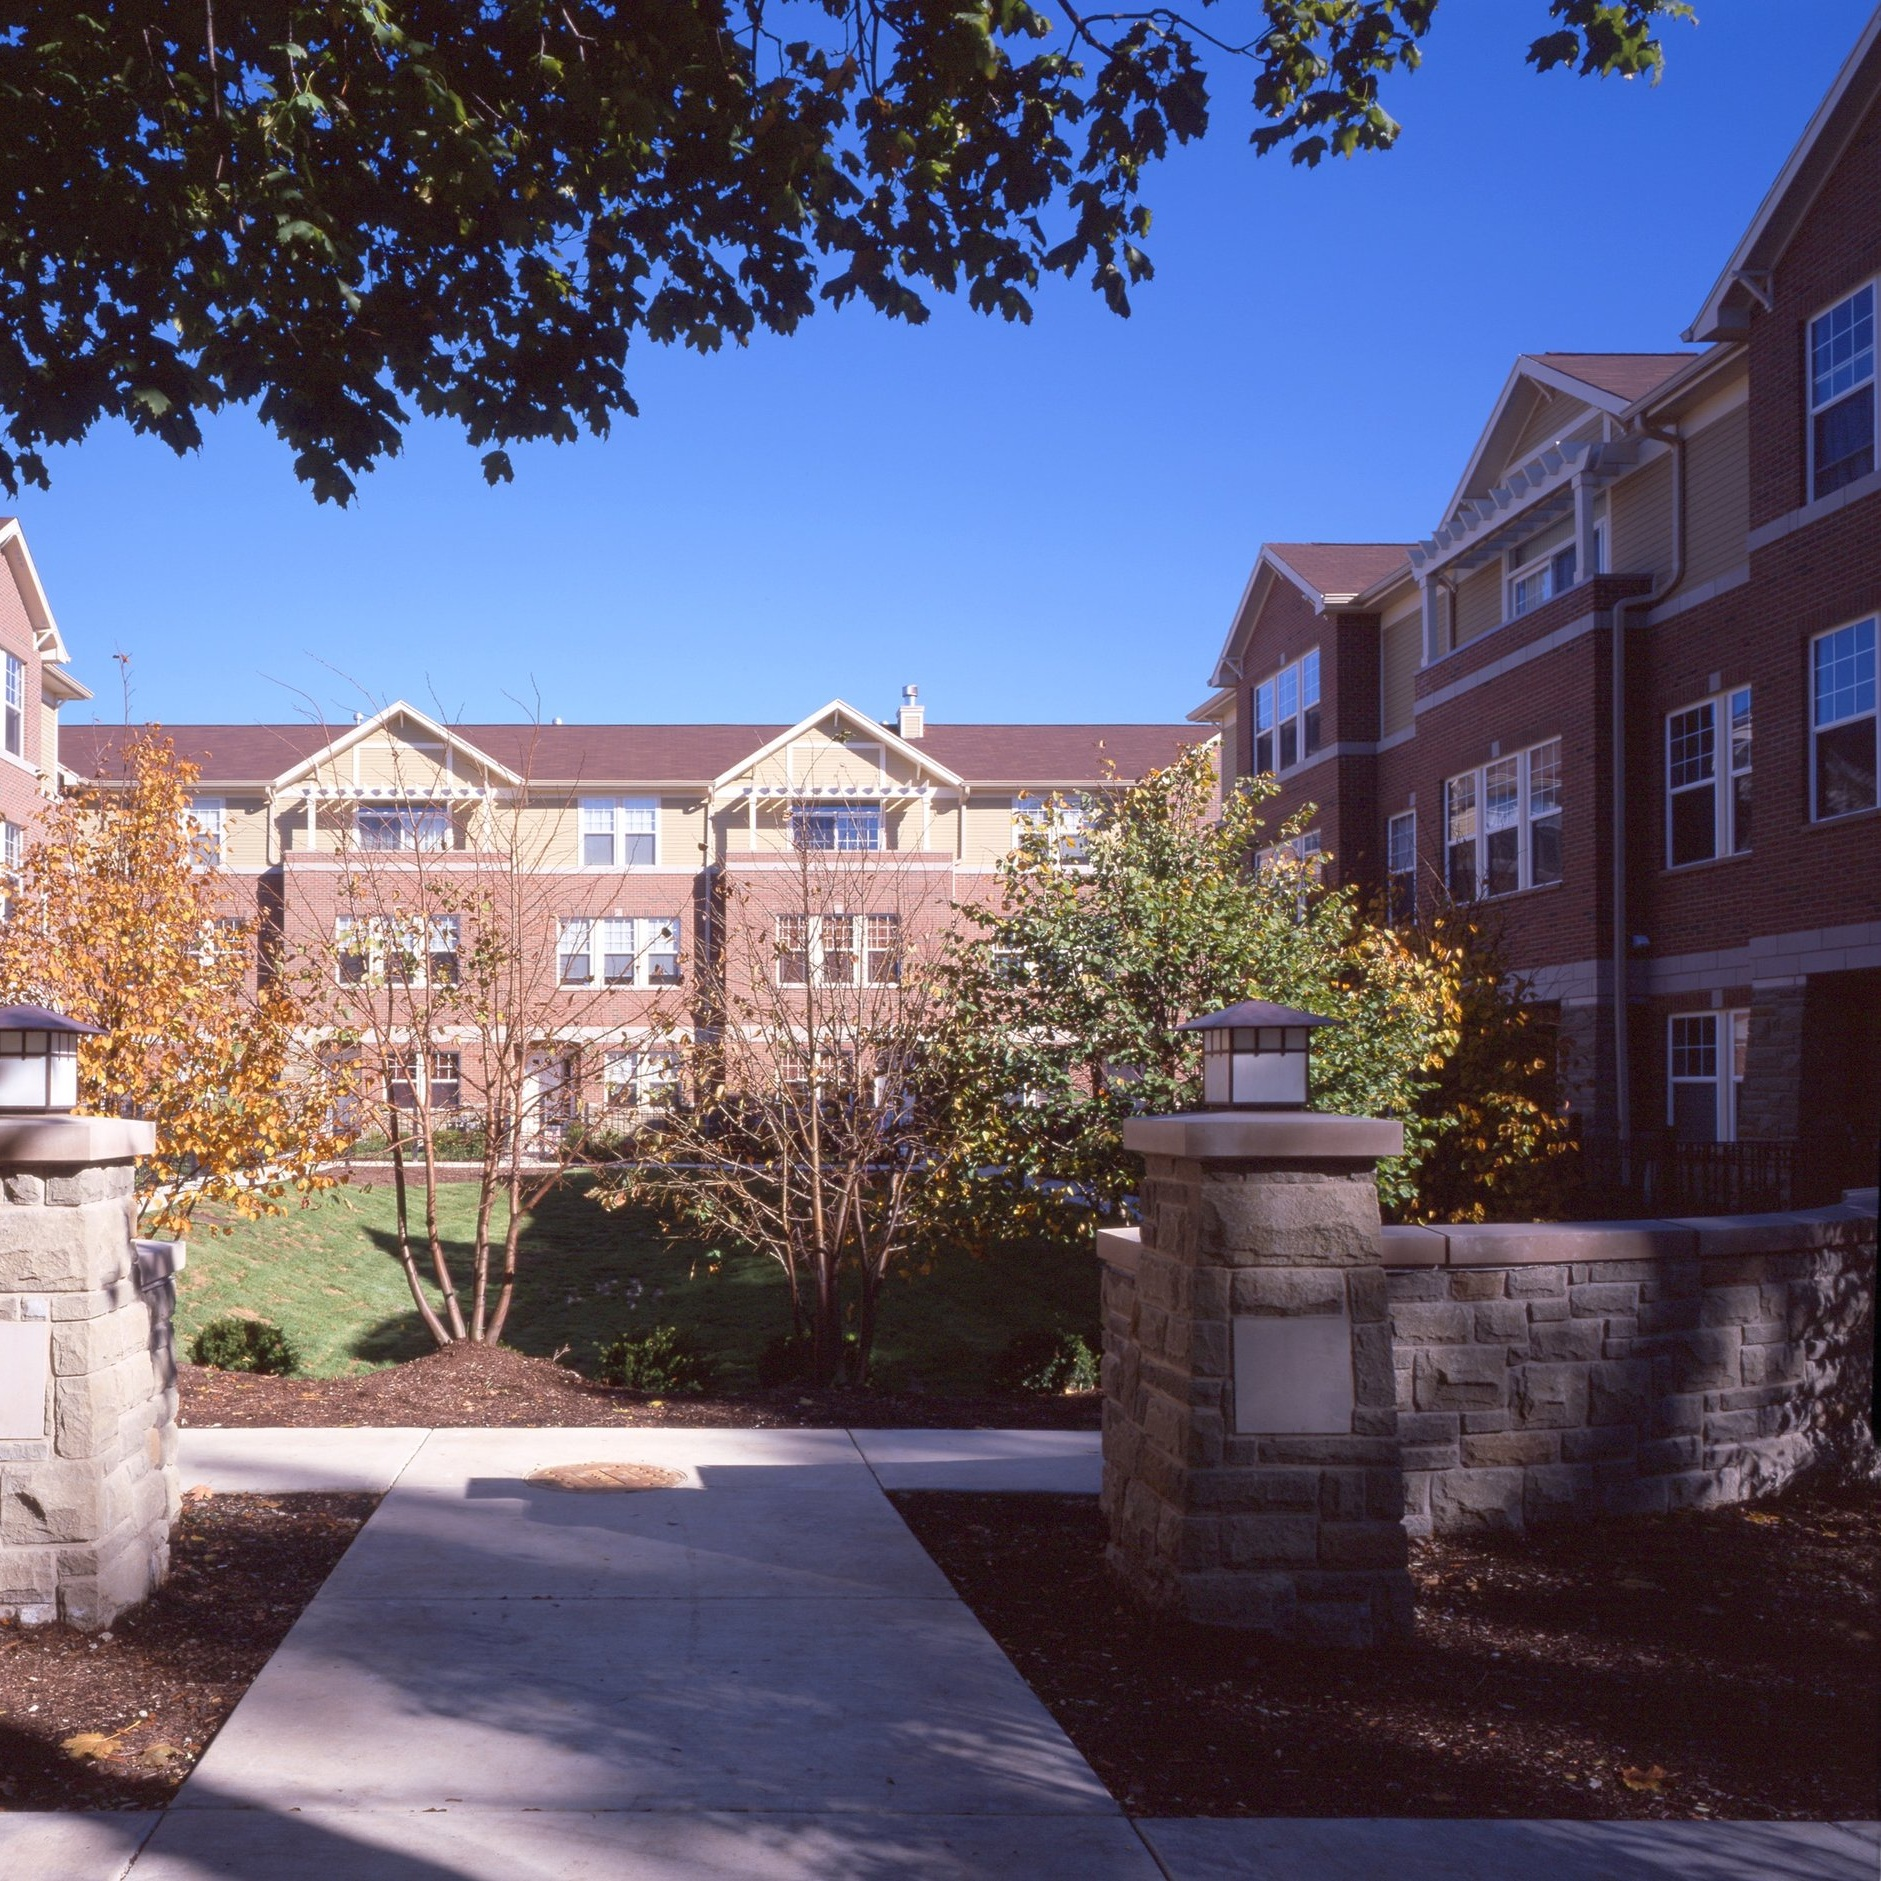 WESLEY SQUARE - 33 TOWNHOMESWHEATON2000